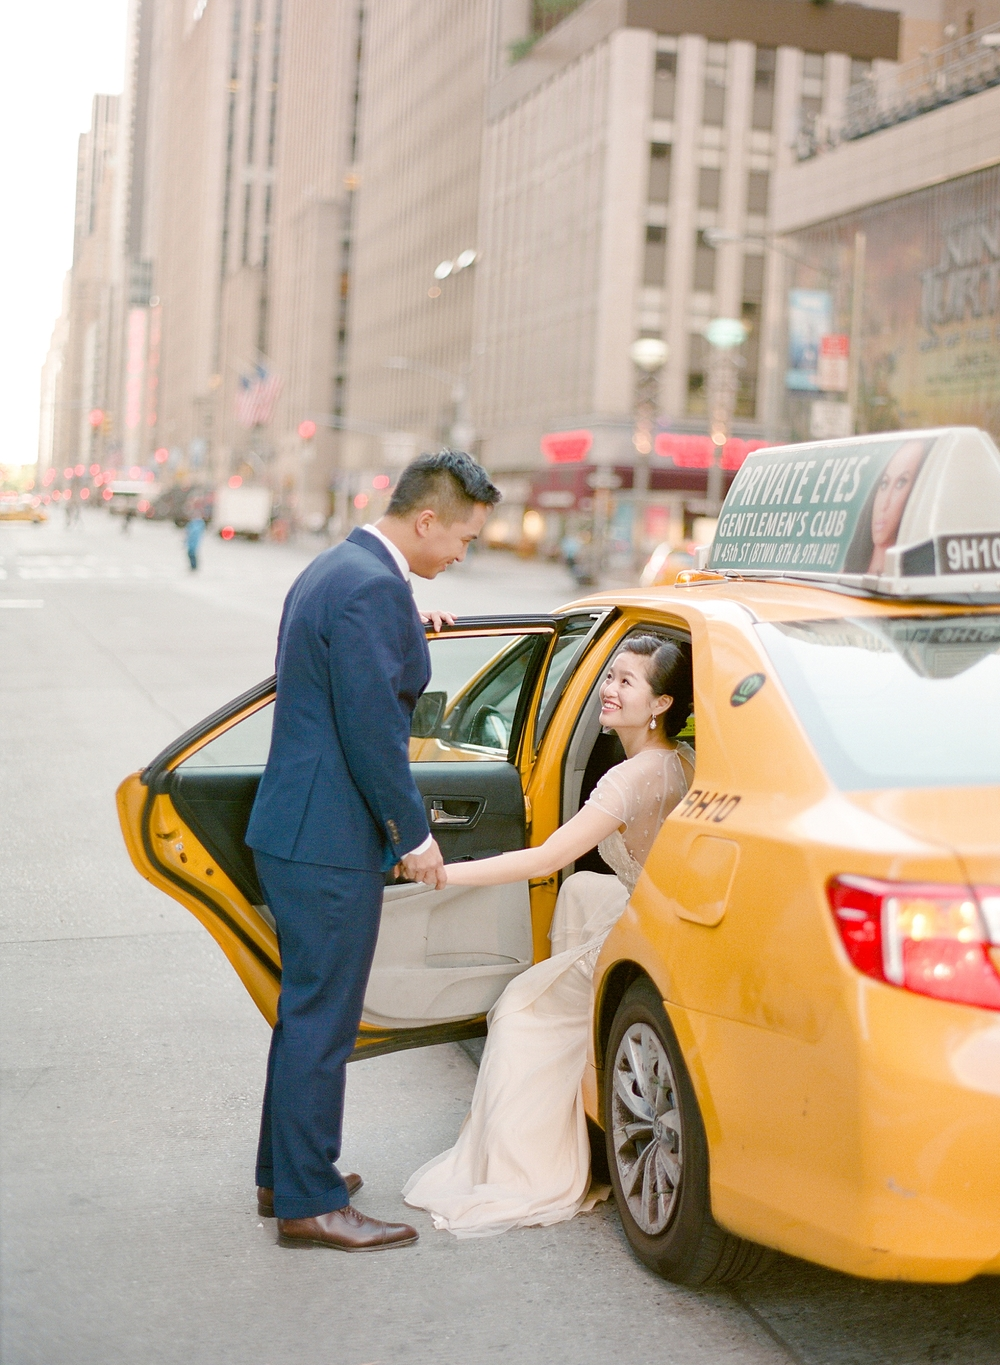 times_square_central_park_new_york_wedding_photos_0051.jpg